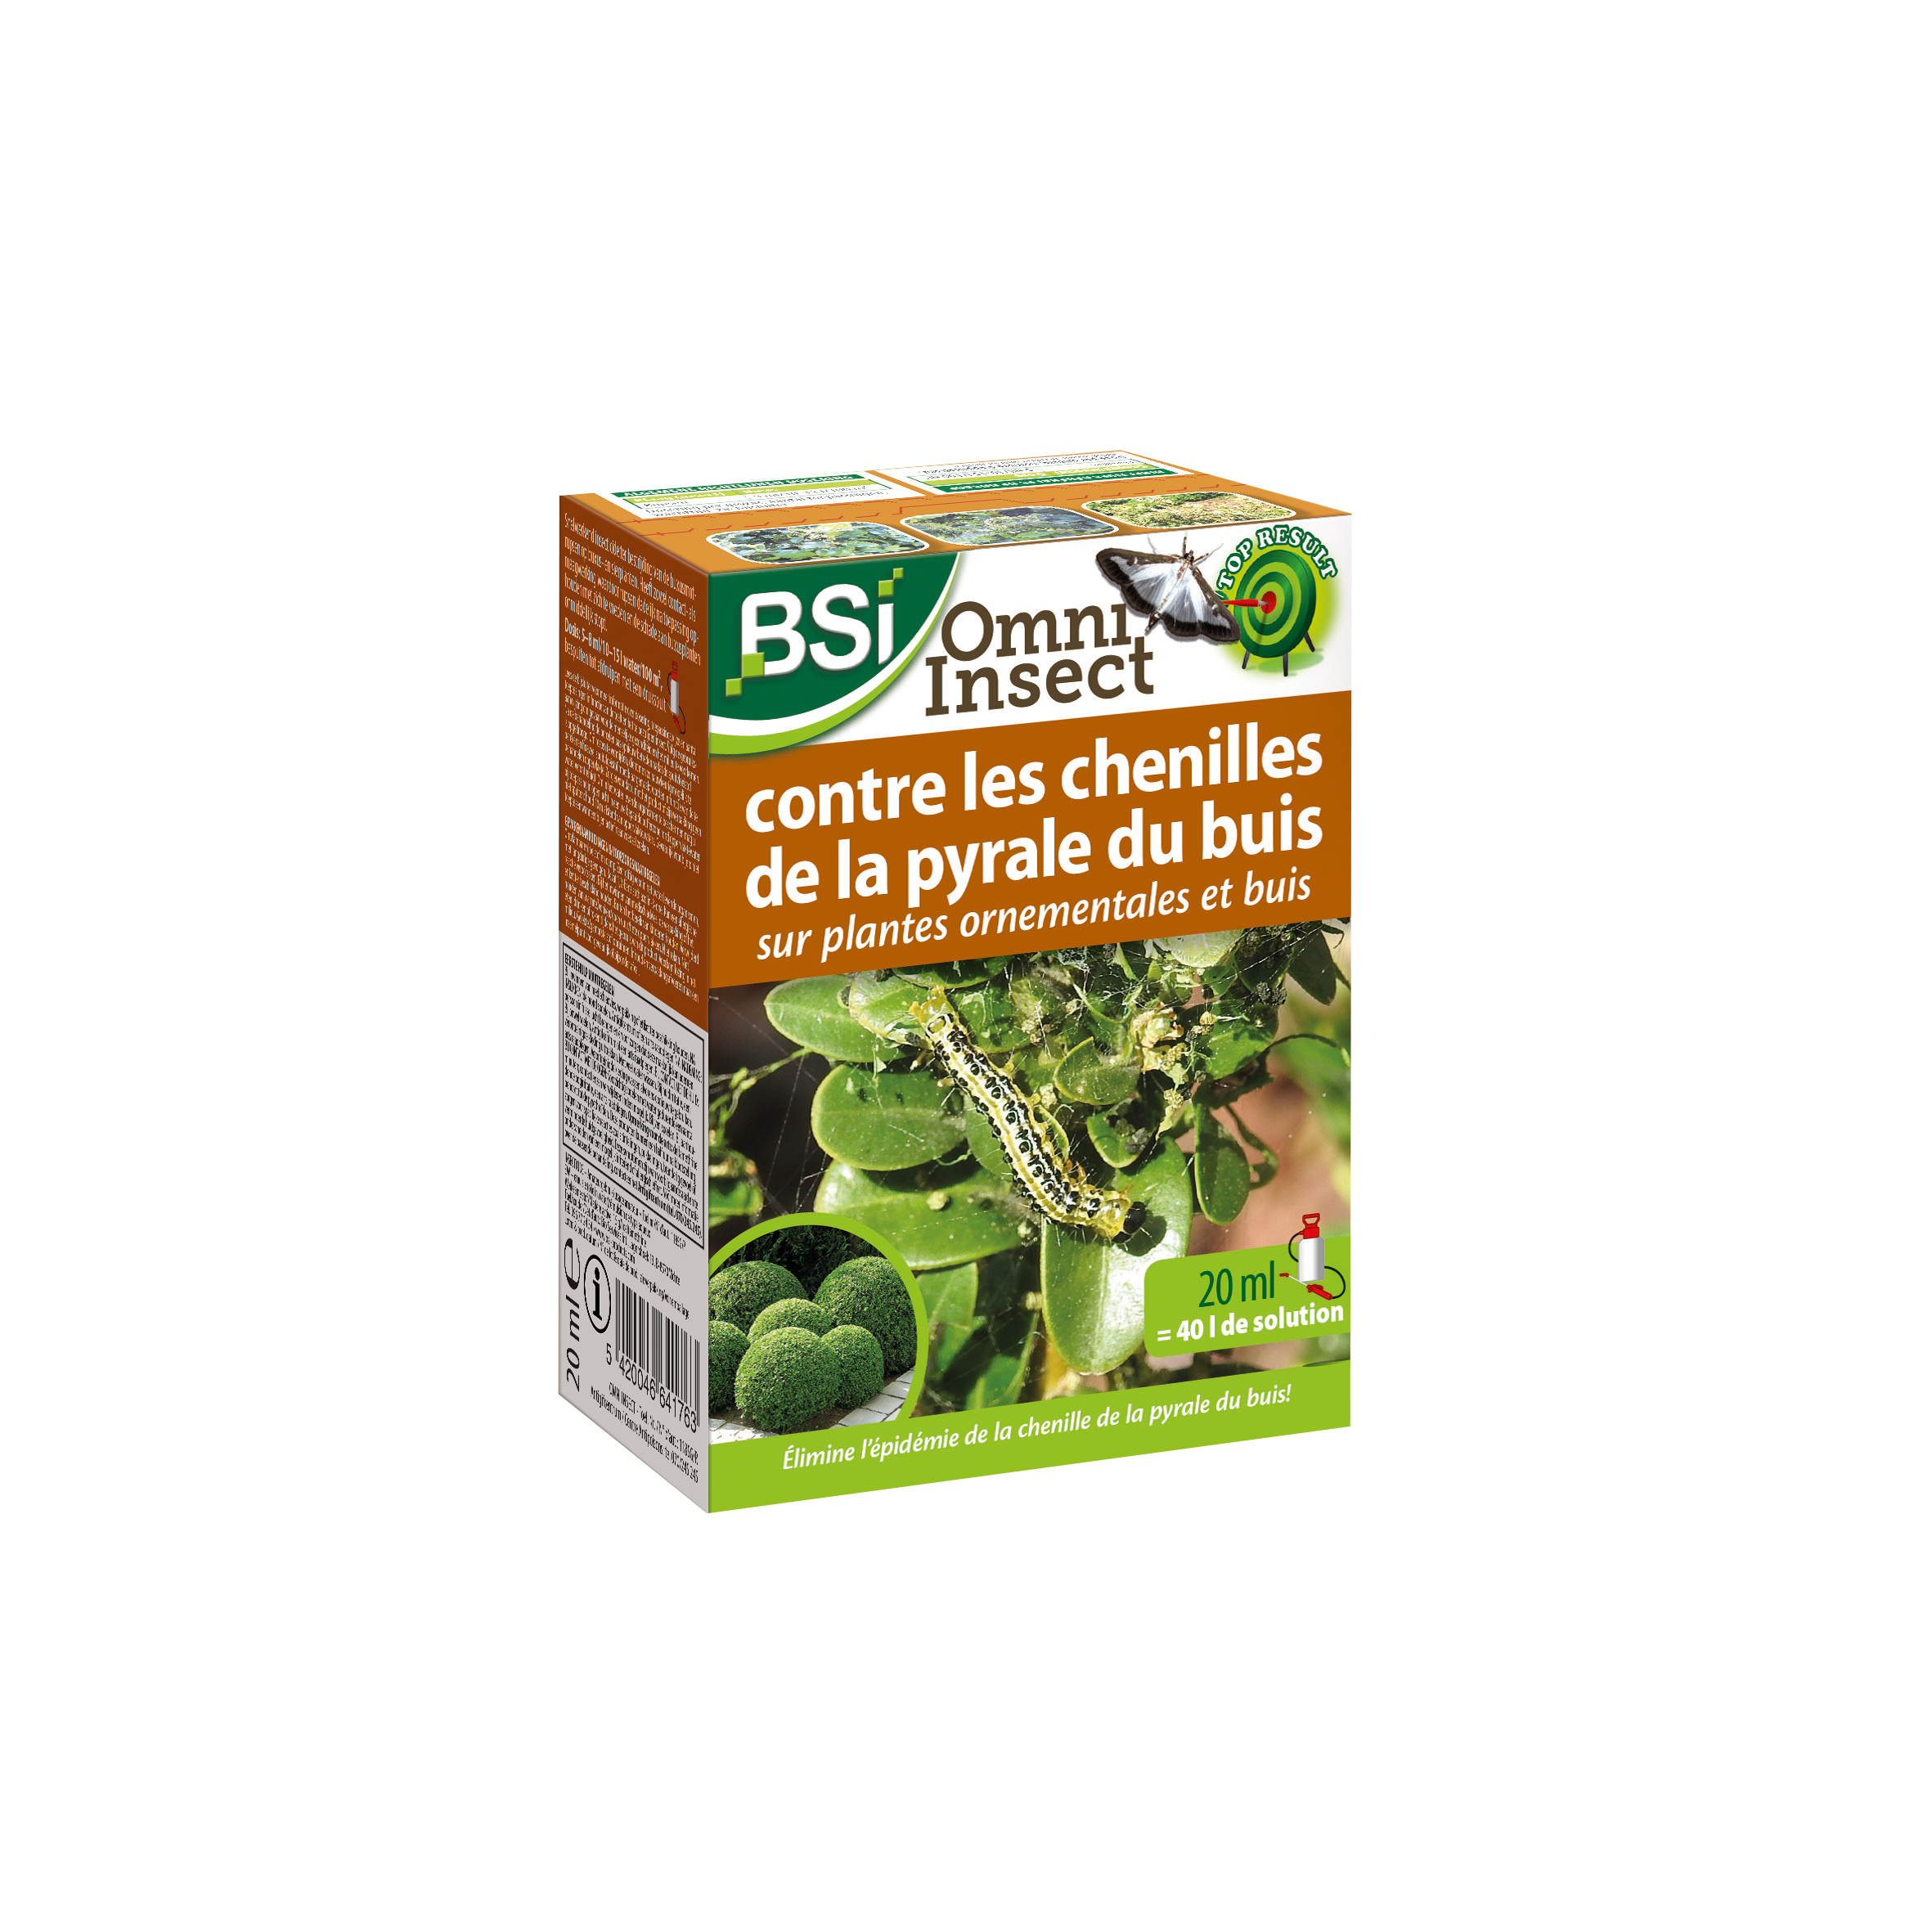 BSI Omni Insect Pyrale du Buis BE 20 ml image